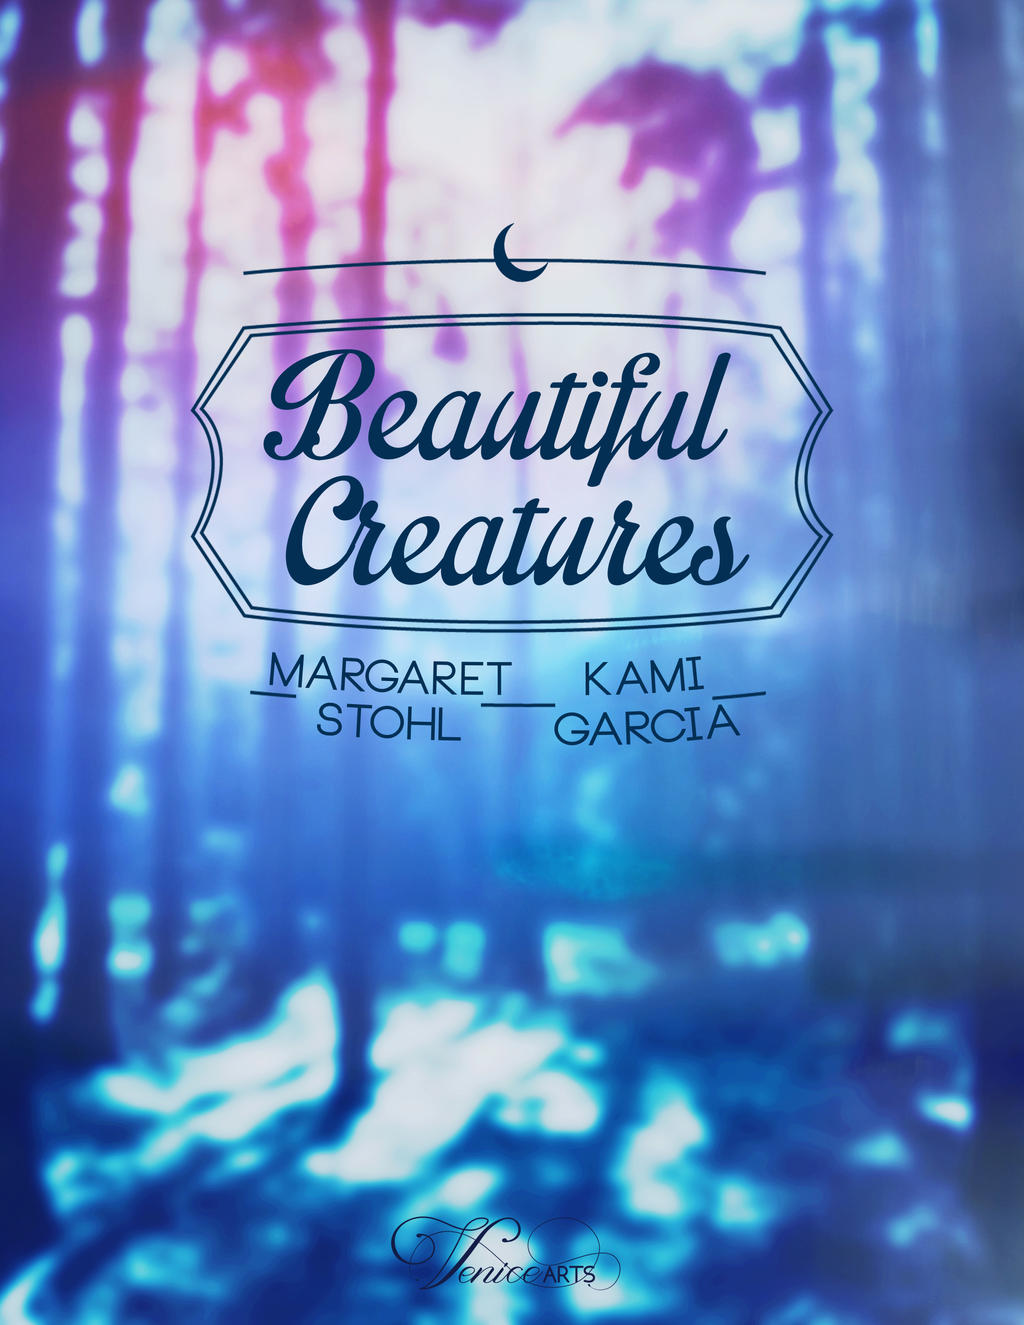 Beautiful Redemption Book Cover : Beautiful creatures book cover portada by venice on